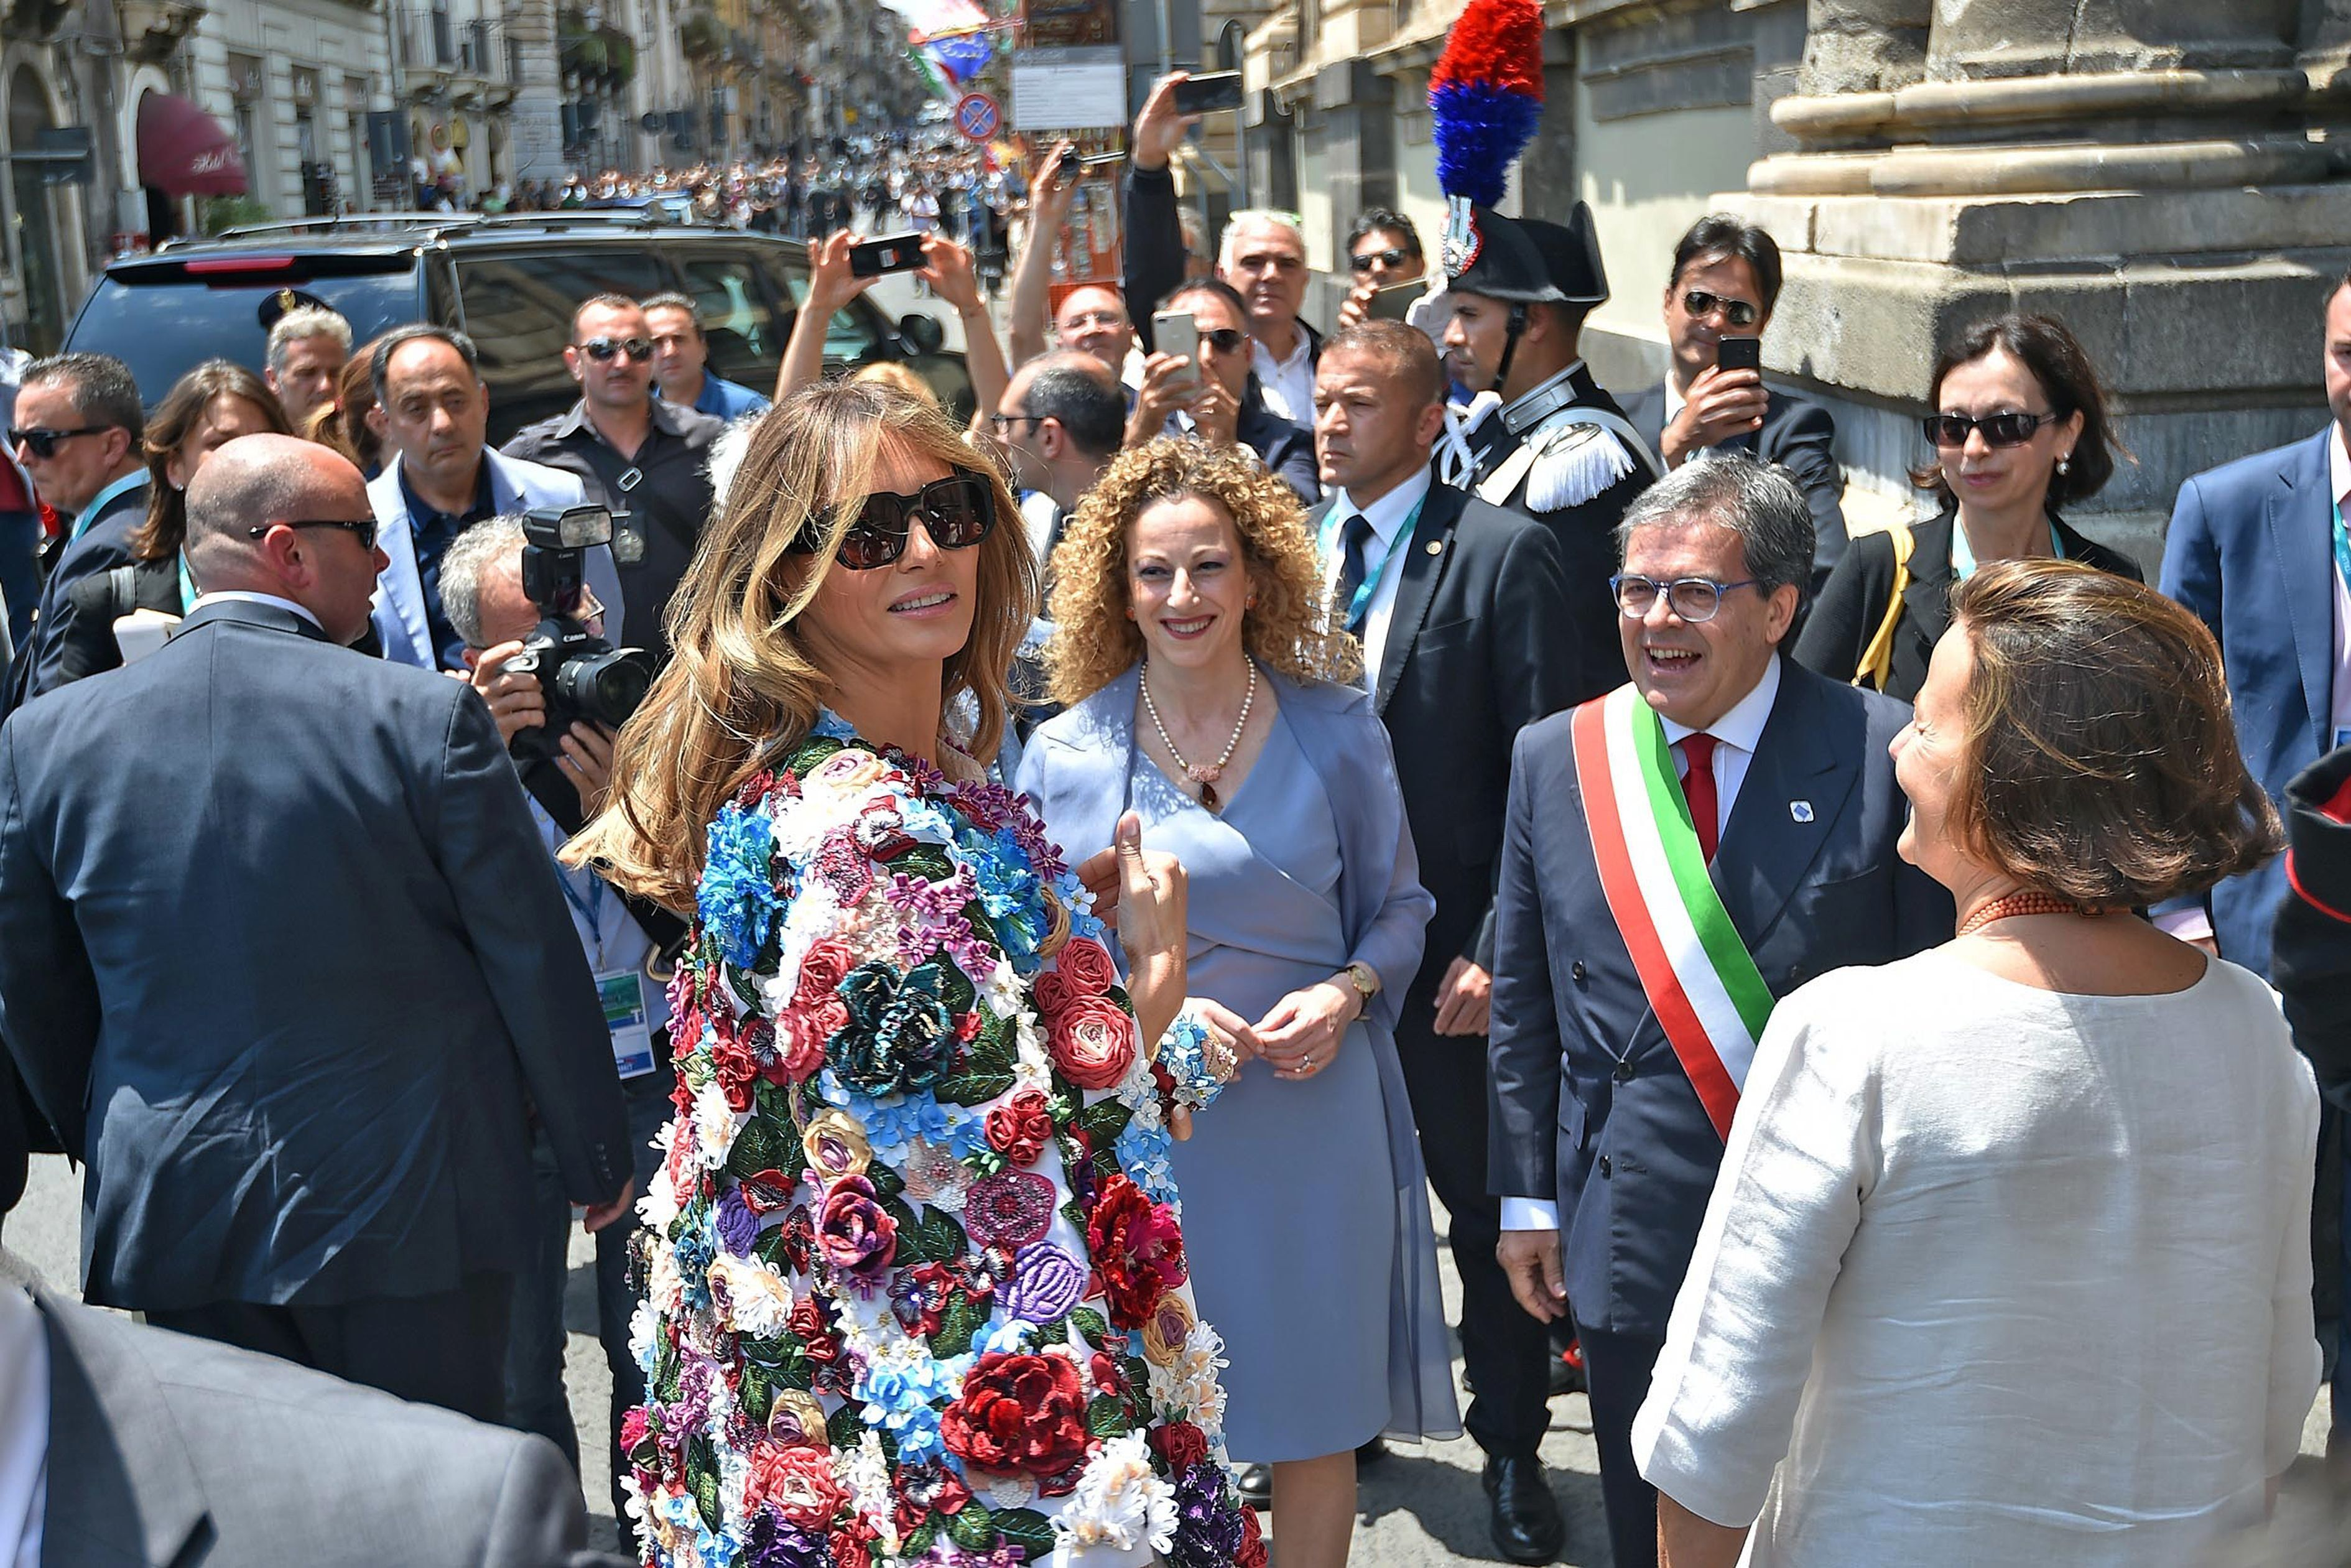 US First Lady Melania Trump arrives for a visit at the Chierici Palace City Hall of Catania on the sidelines of a G7 summit of the Heads of State and of Government in Taormina, on May 26, 2017 in Sicily. The leaders of Britain, Canada, France, Germany, Japan, the US and Italy will be joined by representatives of the European Union and the International Monetary Fund (IMF) as well as teams from Ethiopia, Kenya, Niger, Nigeria and Tunisia during the summit from May 26 to 27, 2017. / AFP PHOTO / GIOVANNI ISOLINO        (Photo credit should read GIOVANNI ISOLINO/AFP/Getty Images)